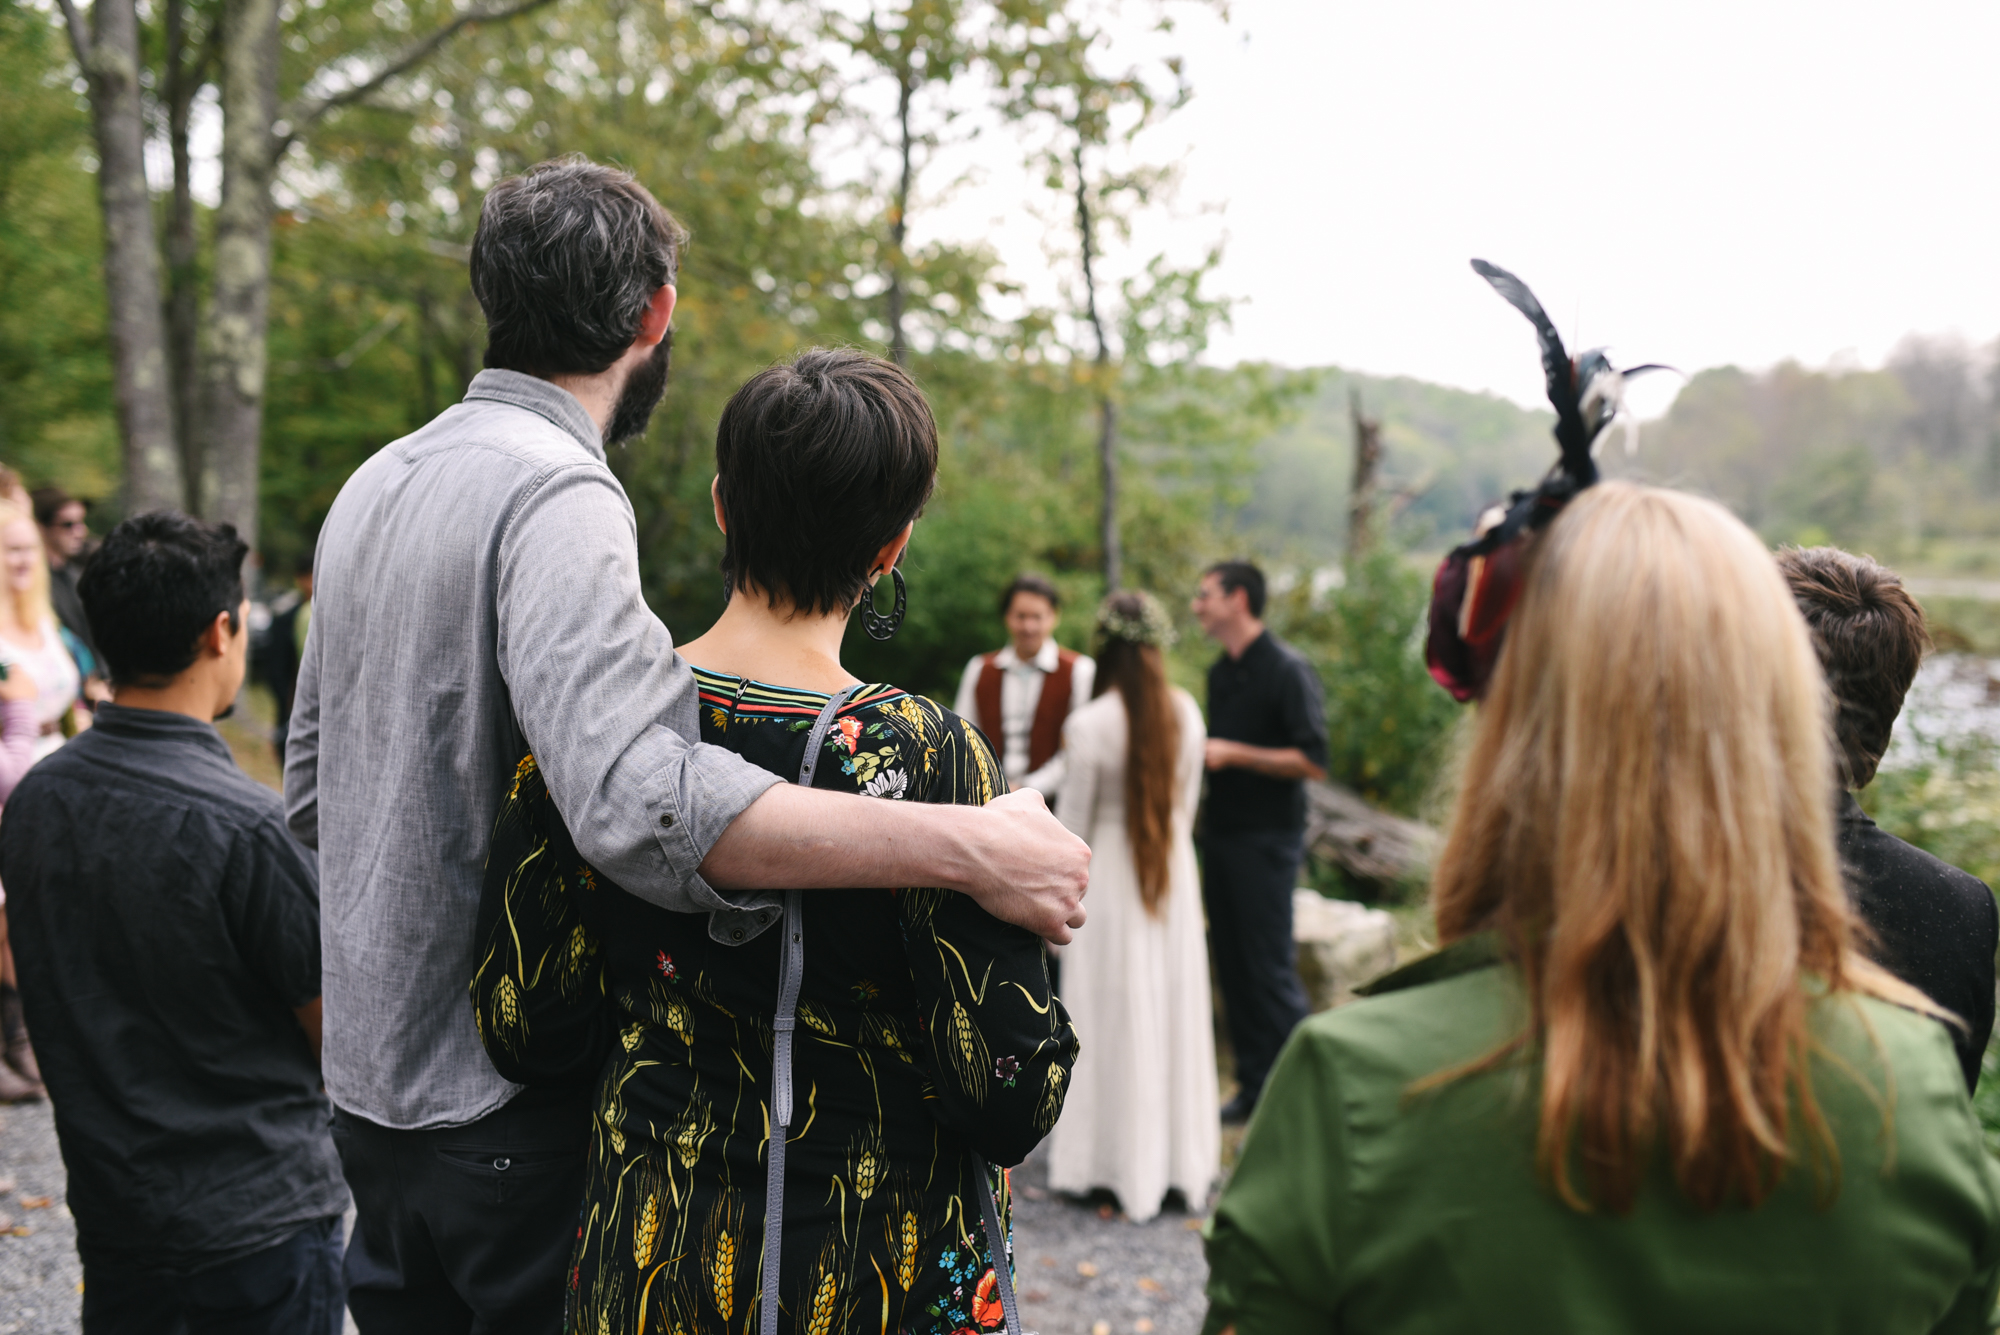 Mountain Wedding, Outdoors, Rustic, West Virginia, Maryland Wedding Photographer, DIY, Casual, Guests hugging and watching ceremony